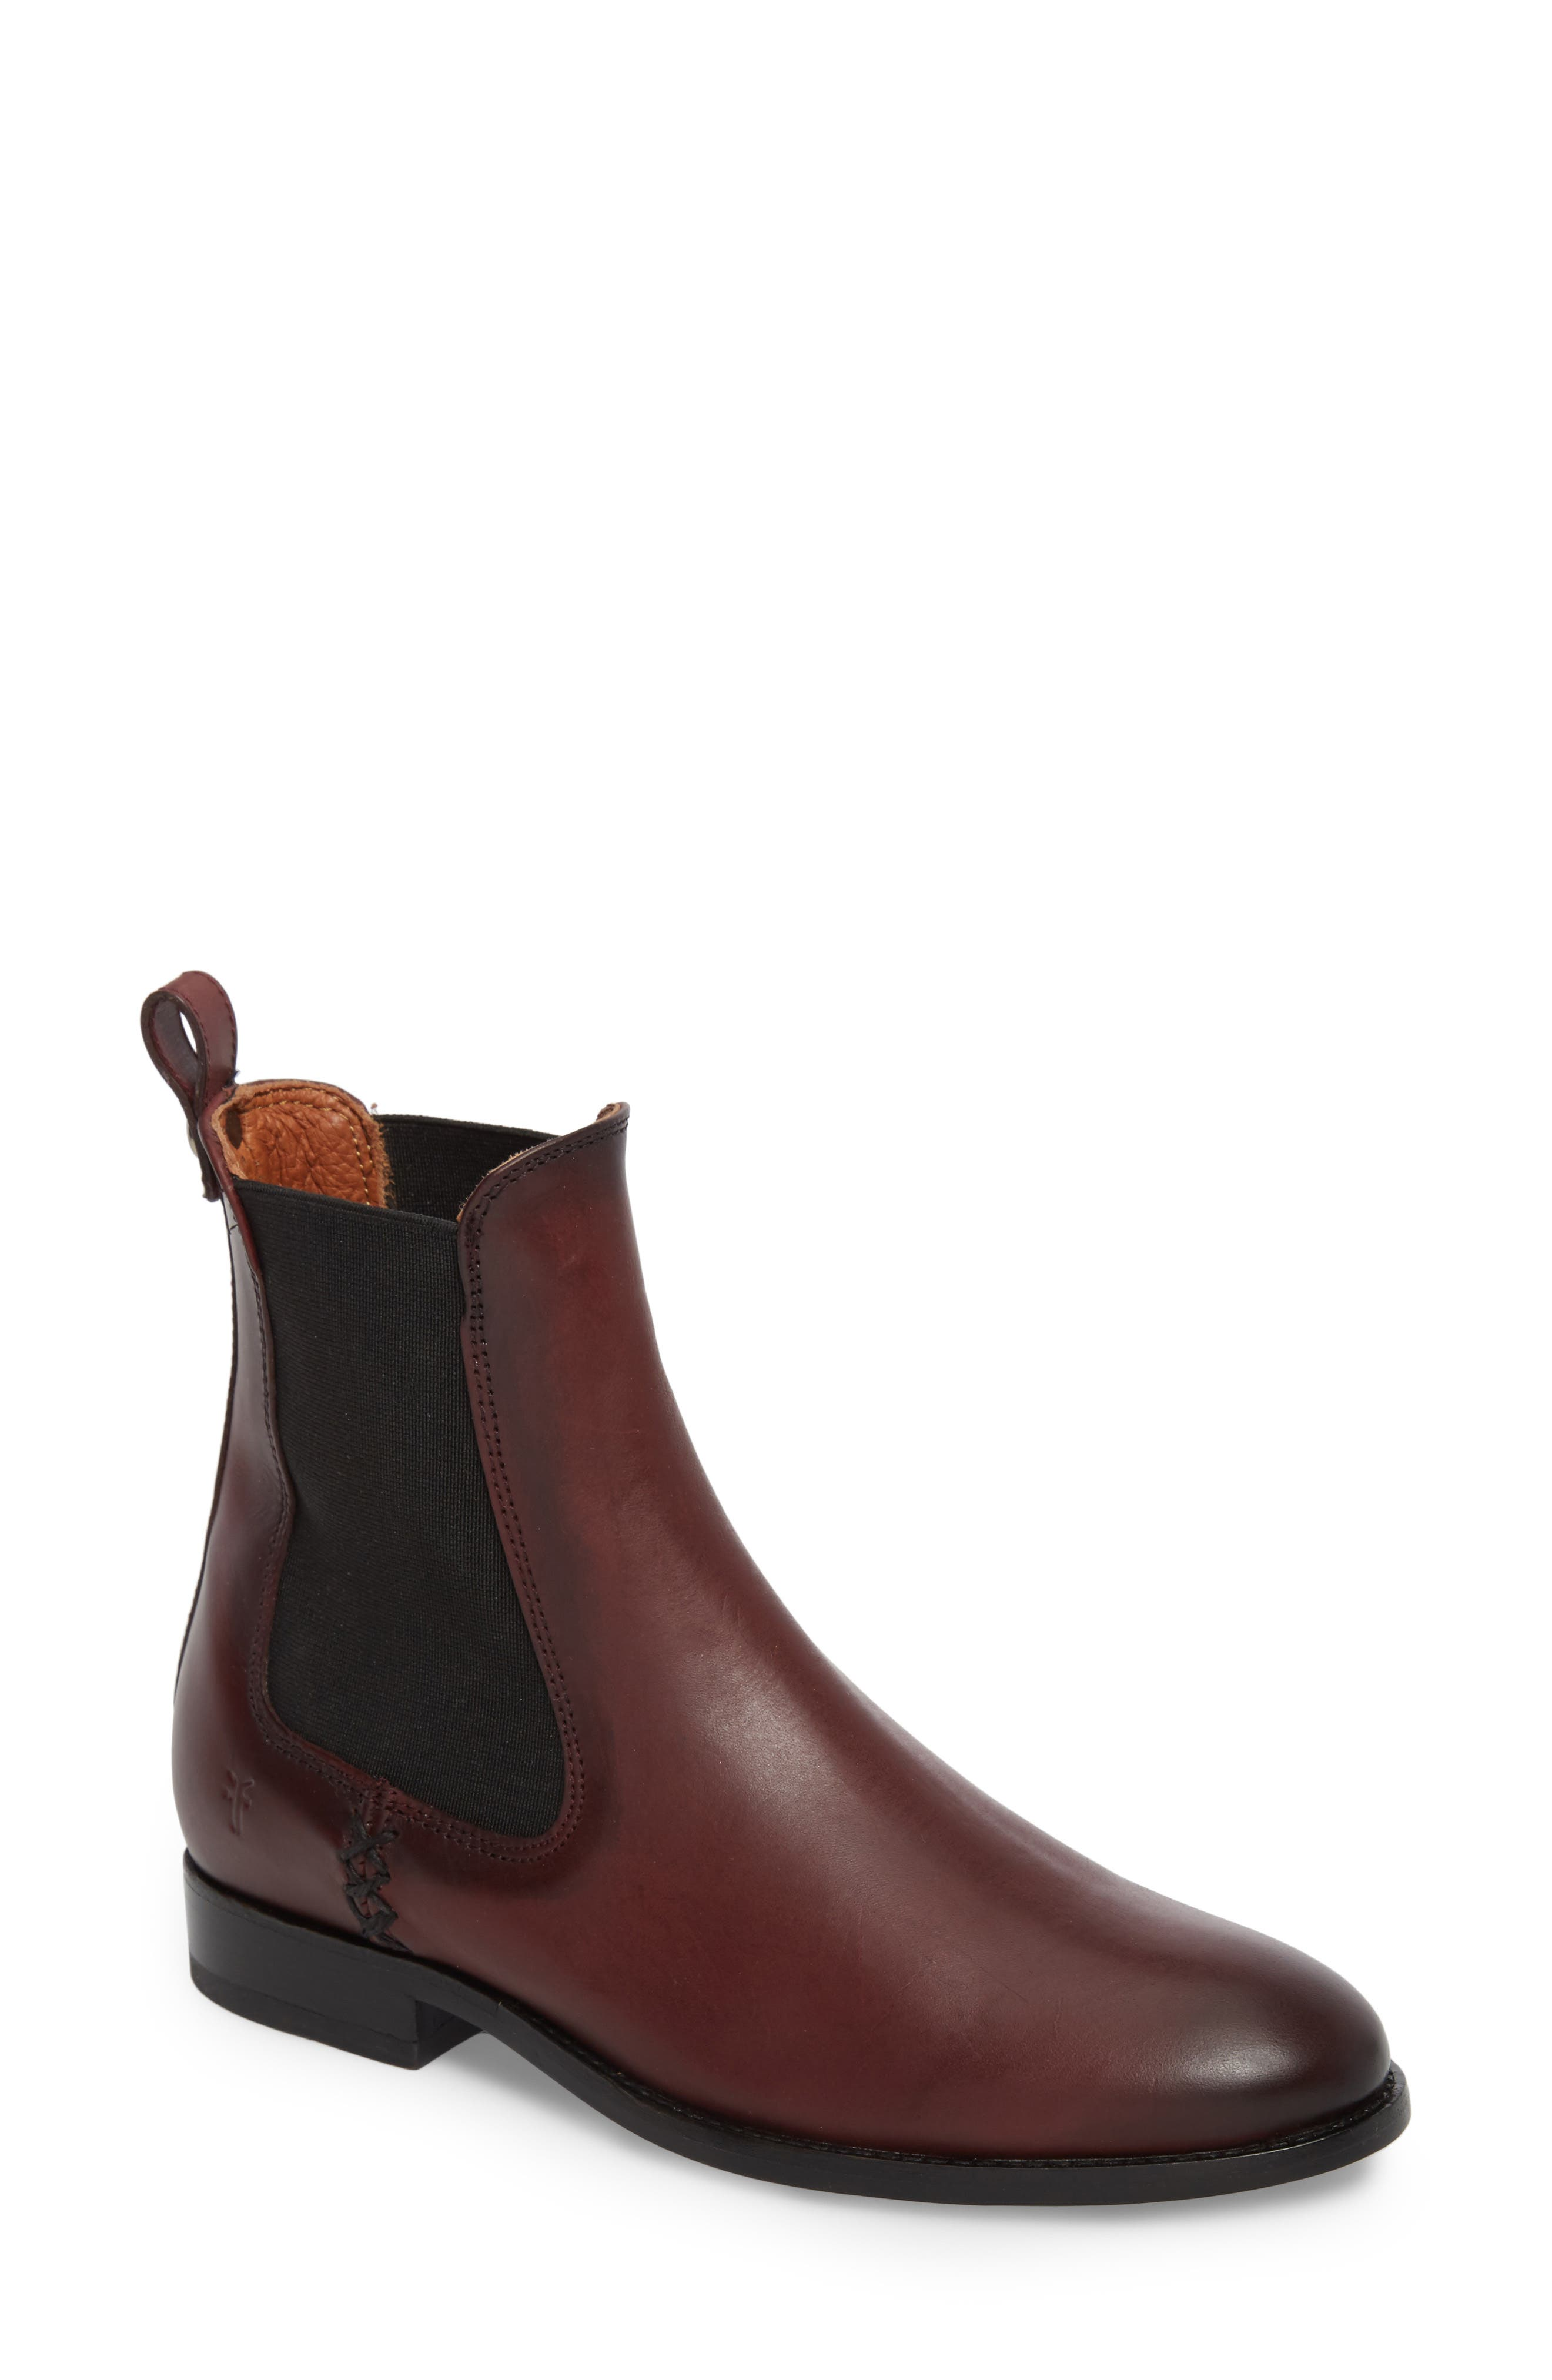 Melissa Chelsea Boot,                             Main thumbnail 1, color,                             Wine